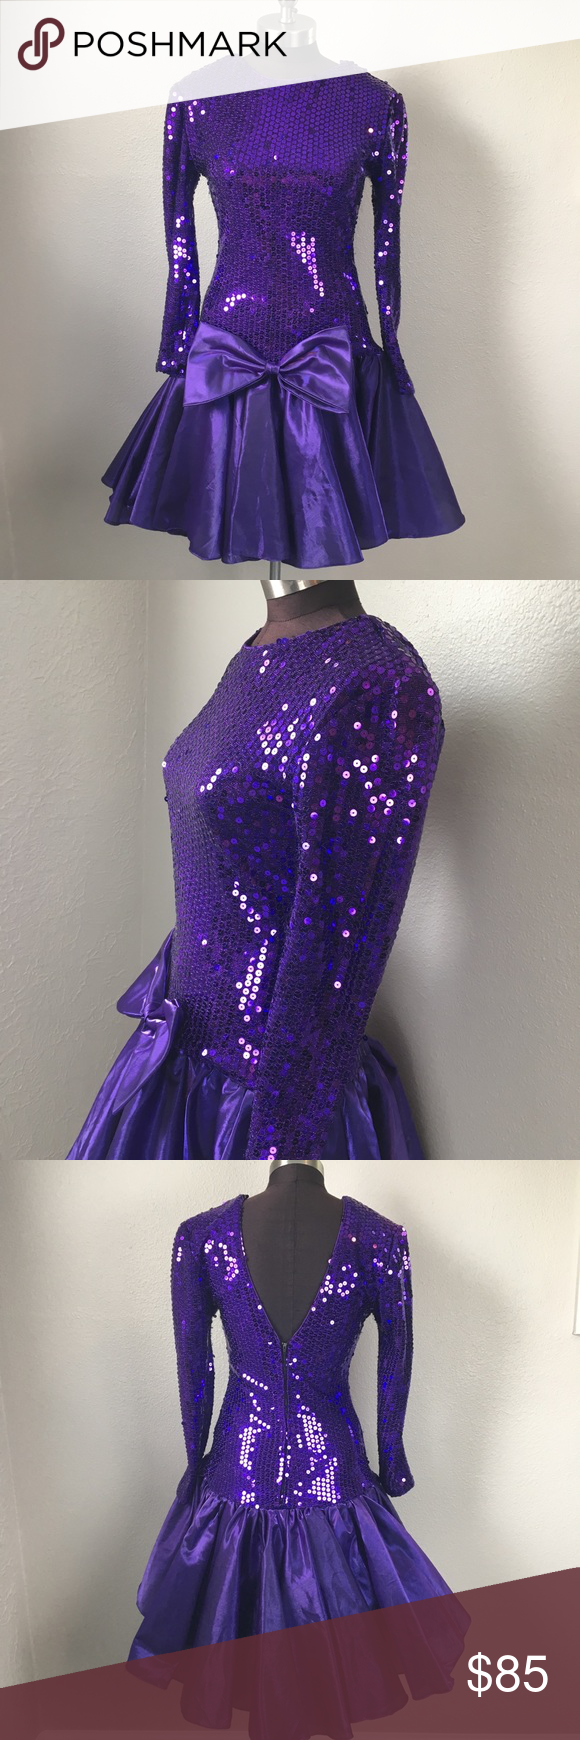 Vintage us sequin purple bow prom dress small sequins prom and